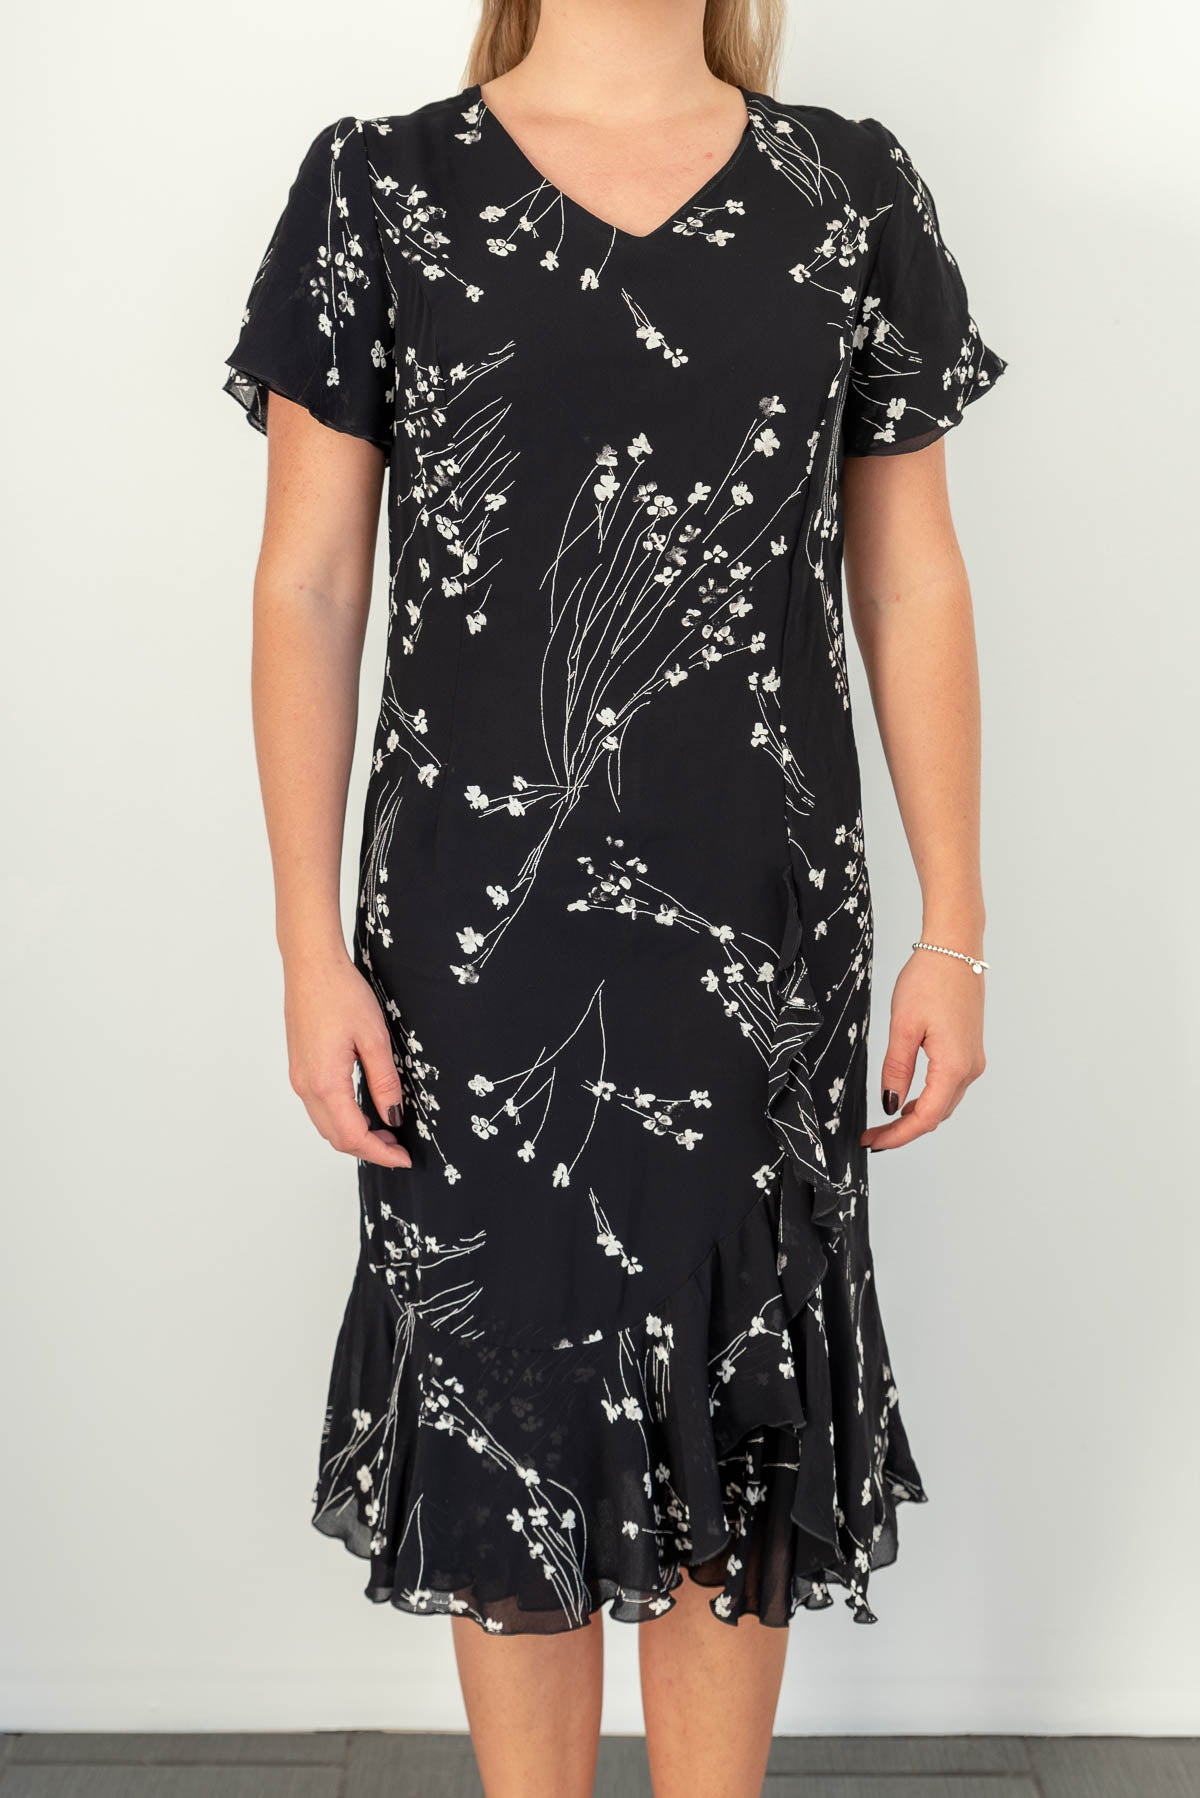 Carolin black & white flower vintage dress, small | Hyvä Helsinki